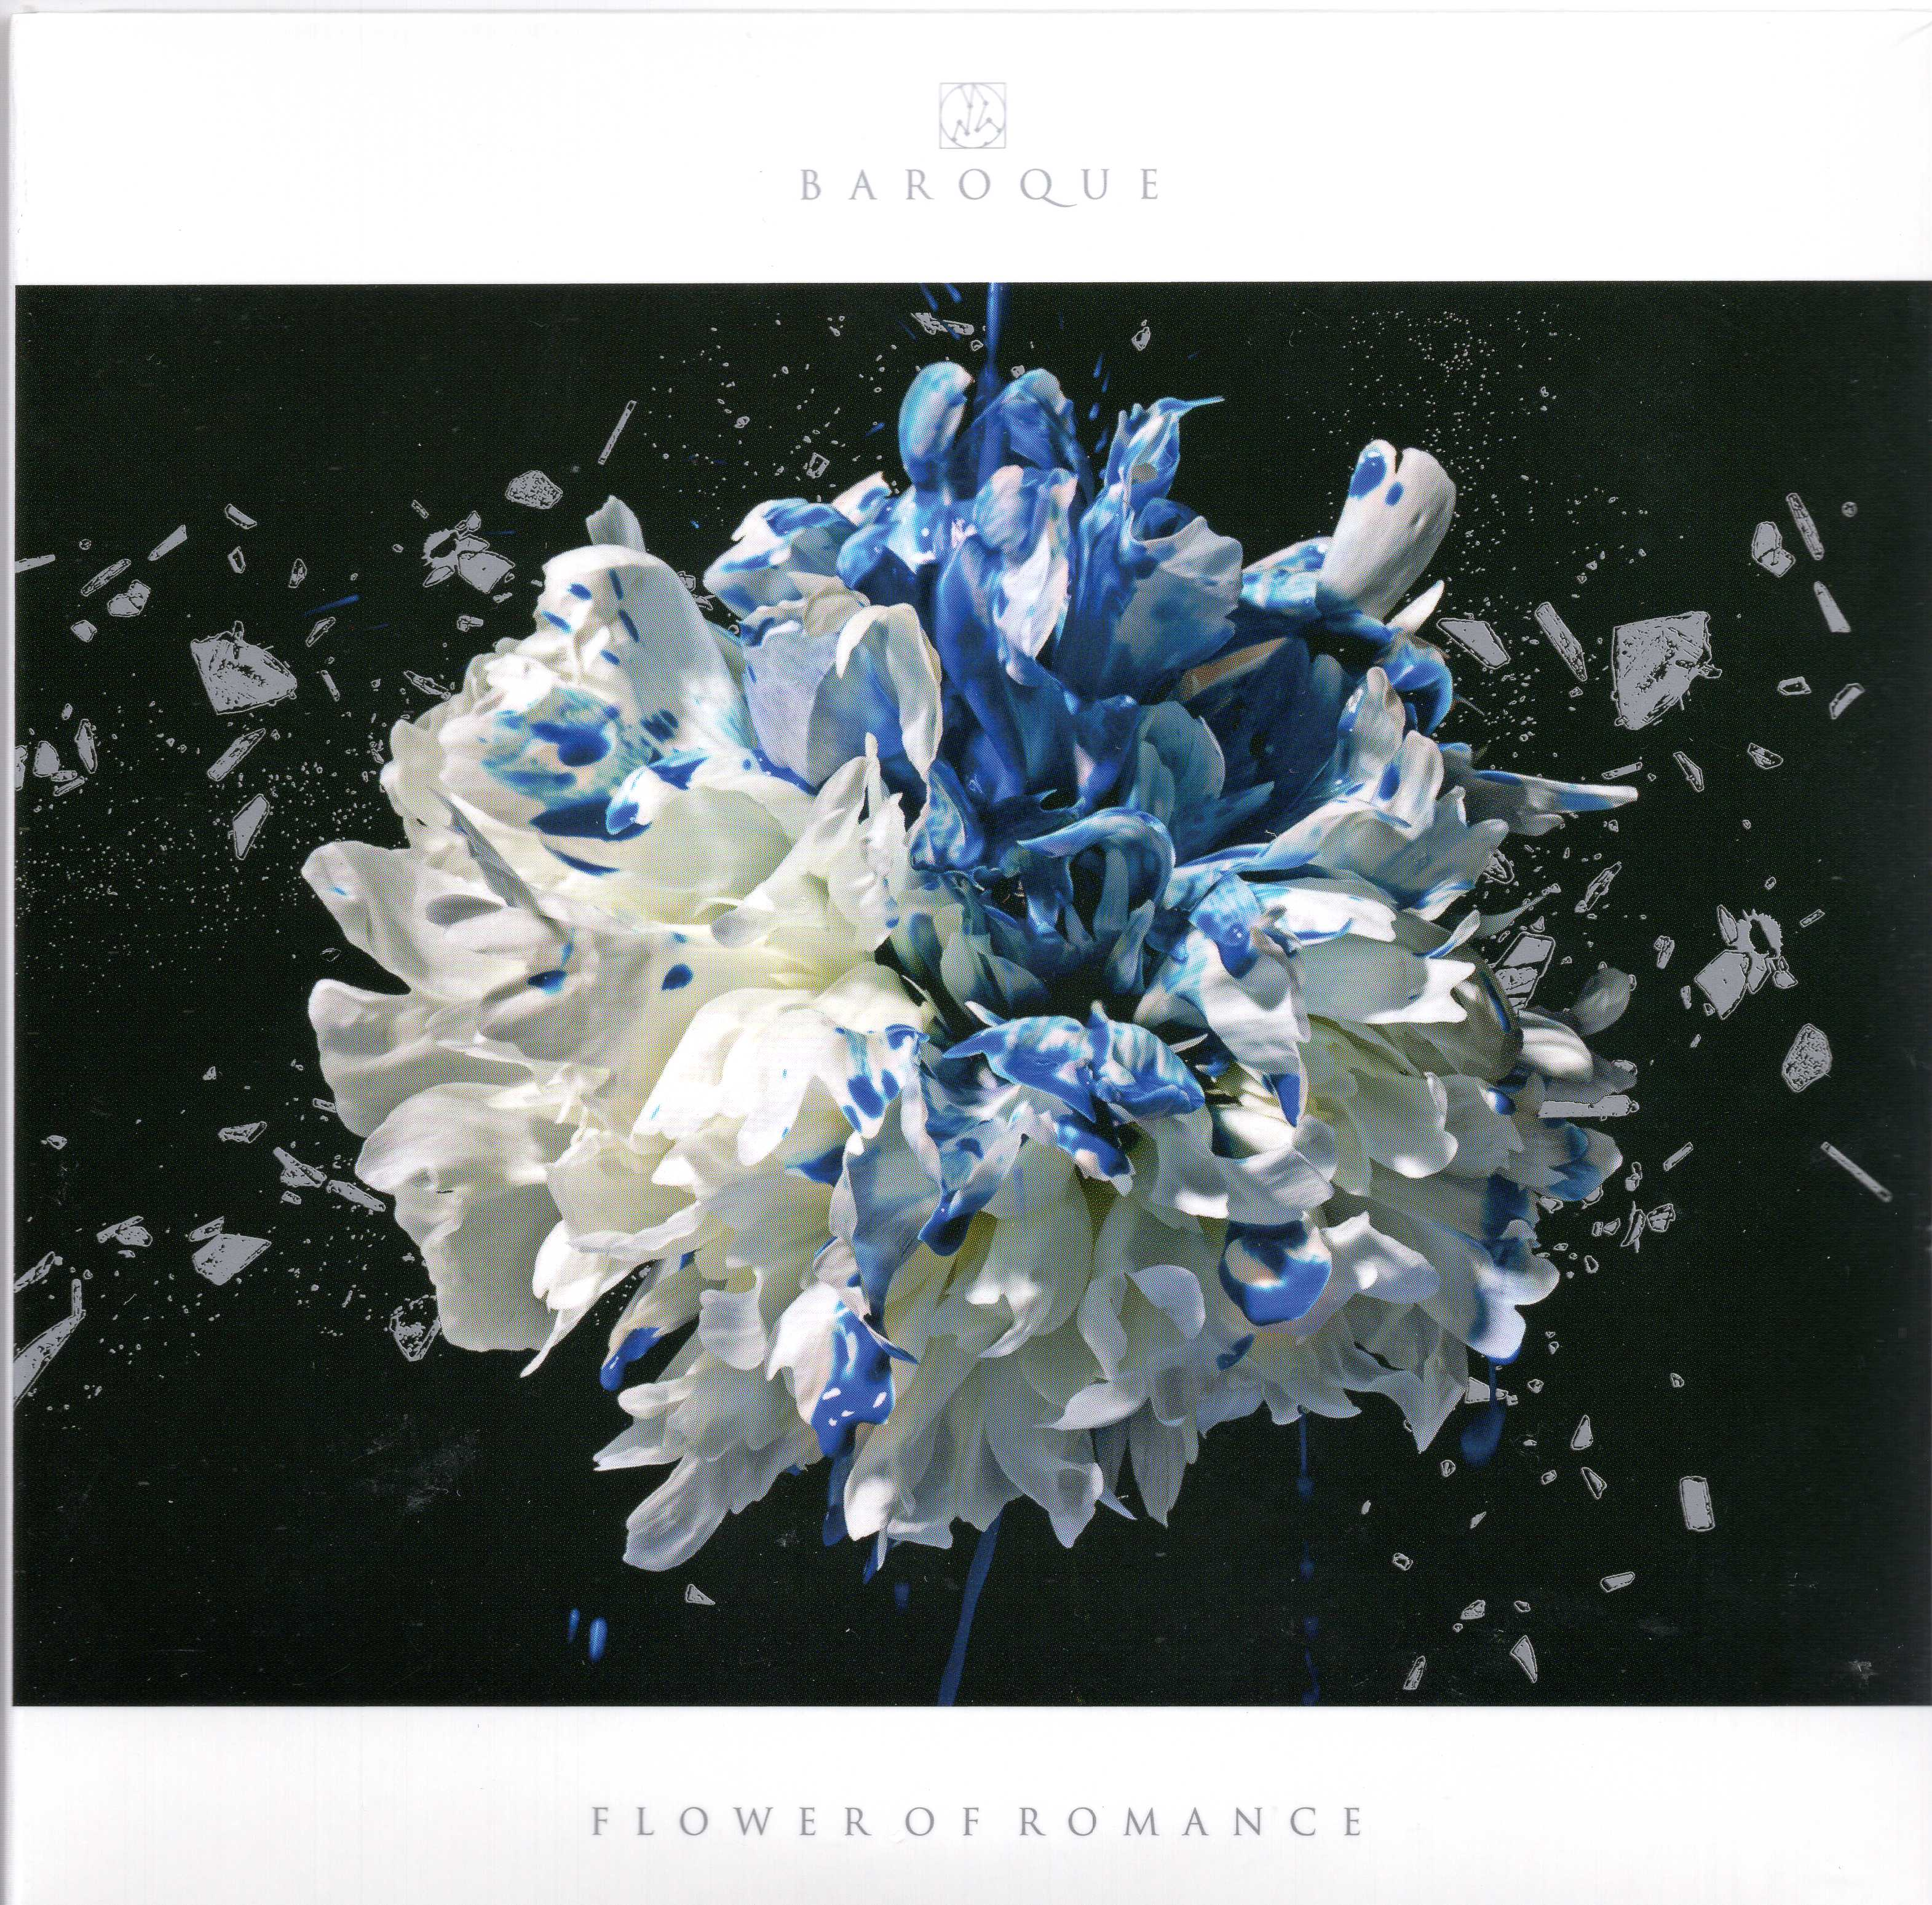 バロック の CD FLOWER OF ROMANCE